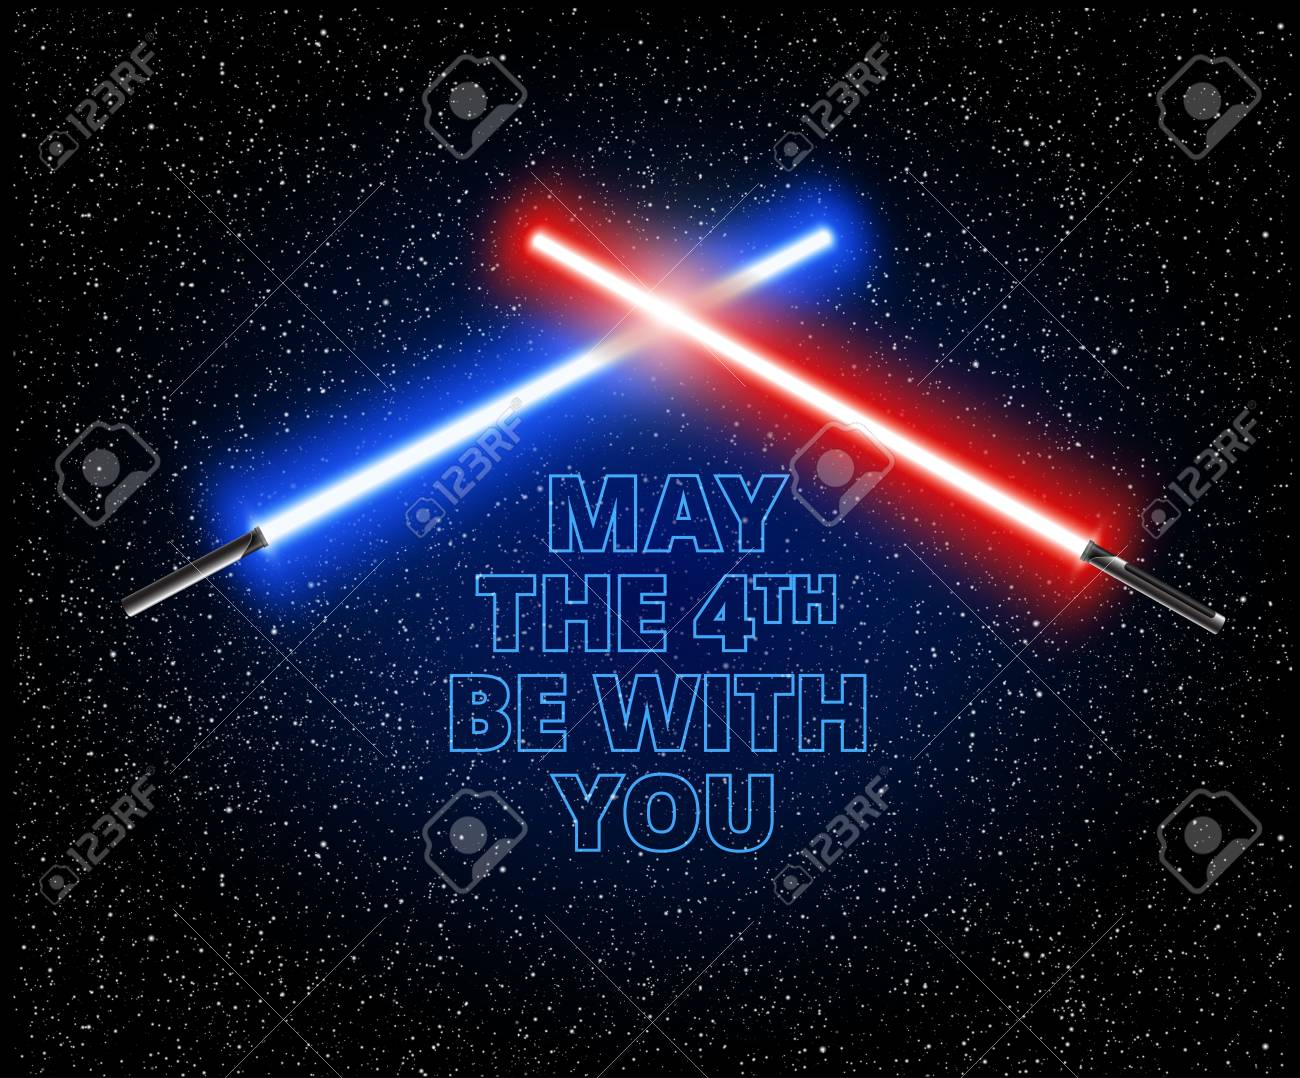 May the 4th be with you illustration with two crossed light swords - vector illustration - 98418275